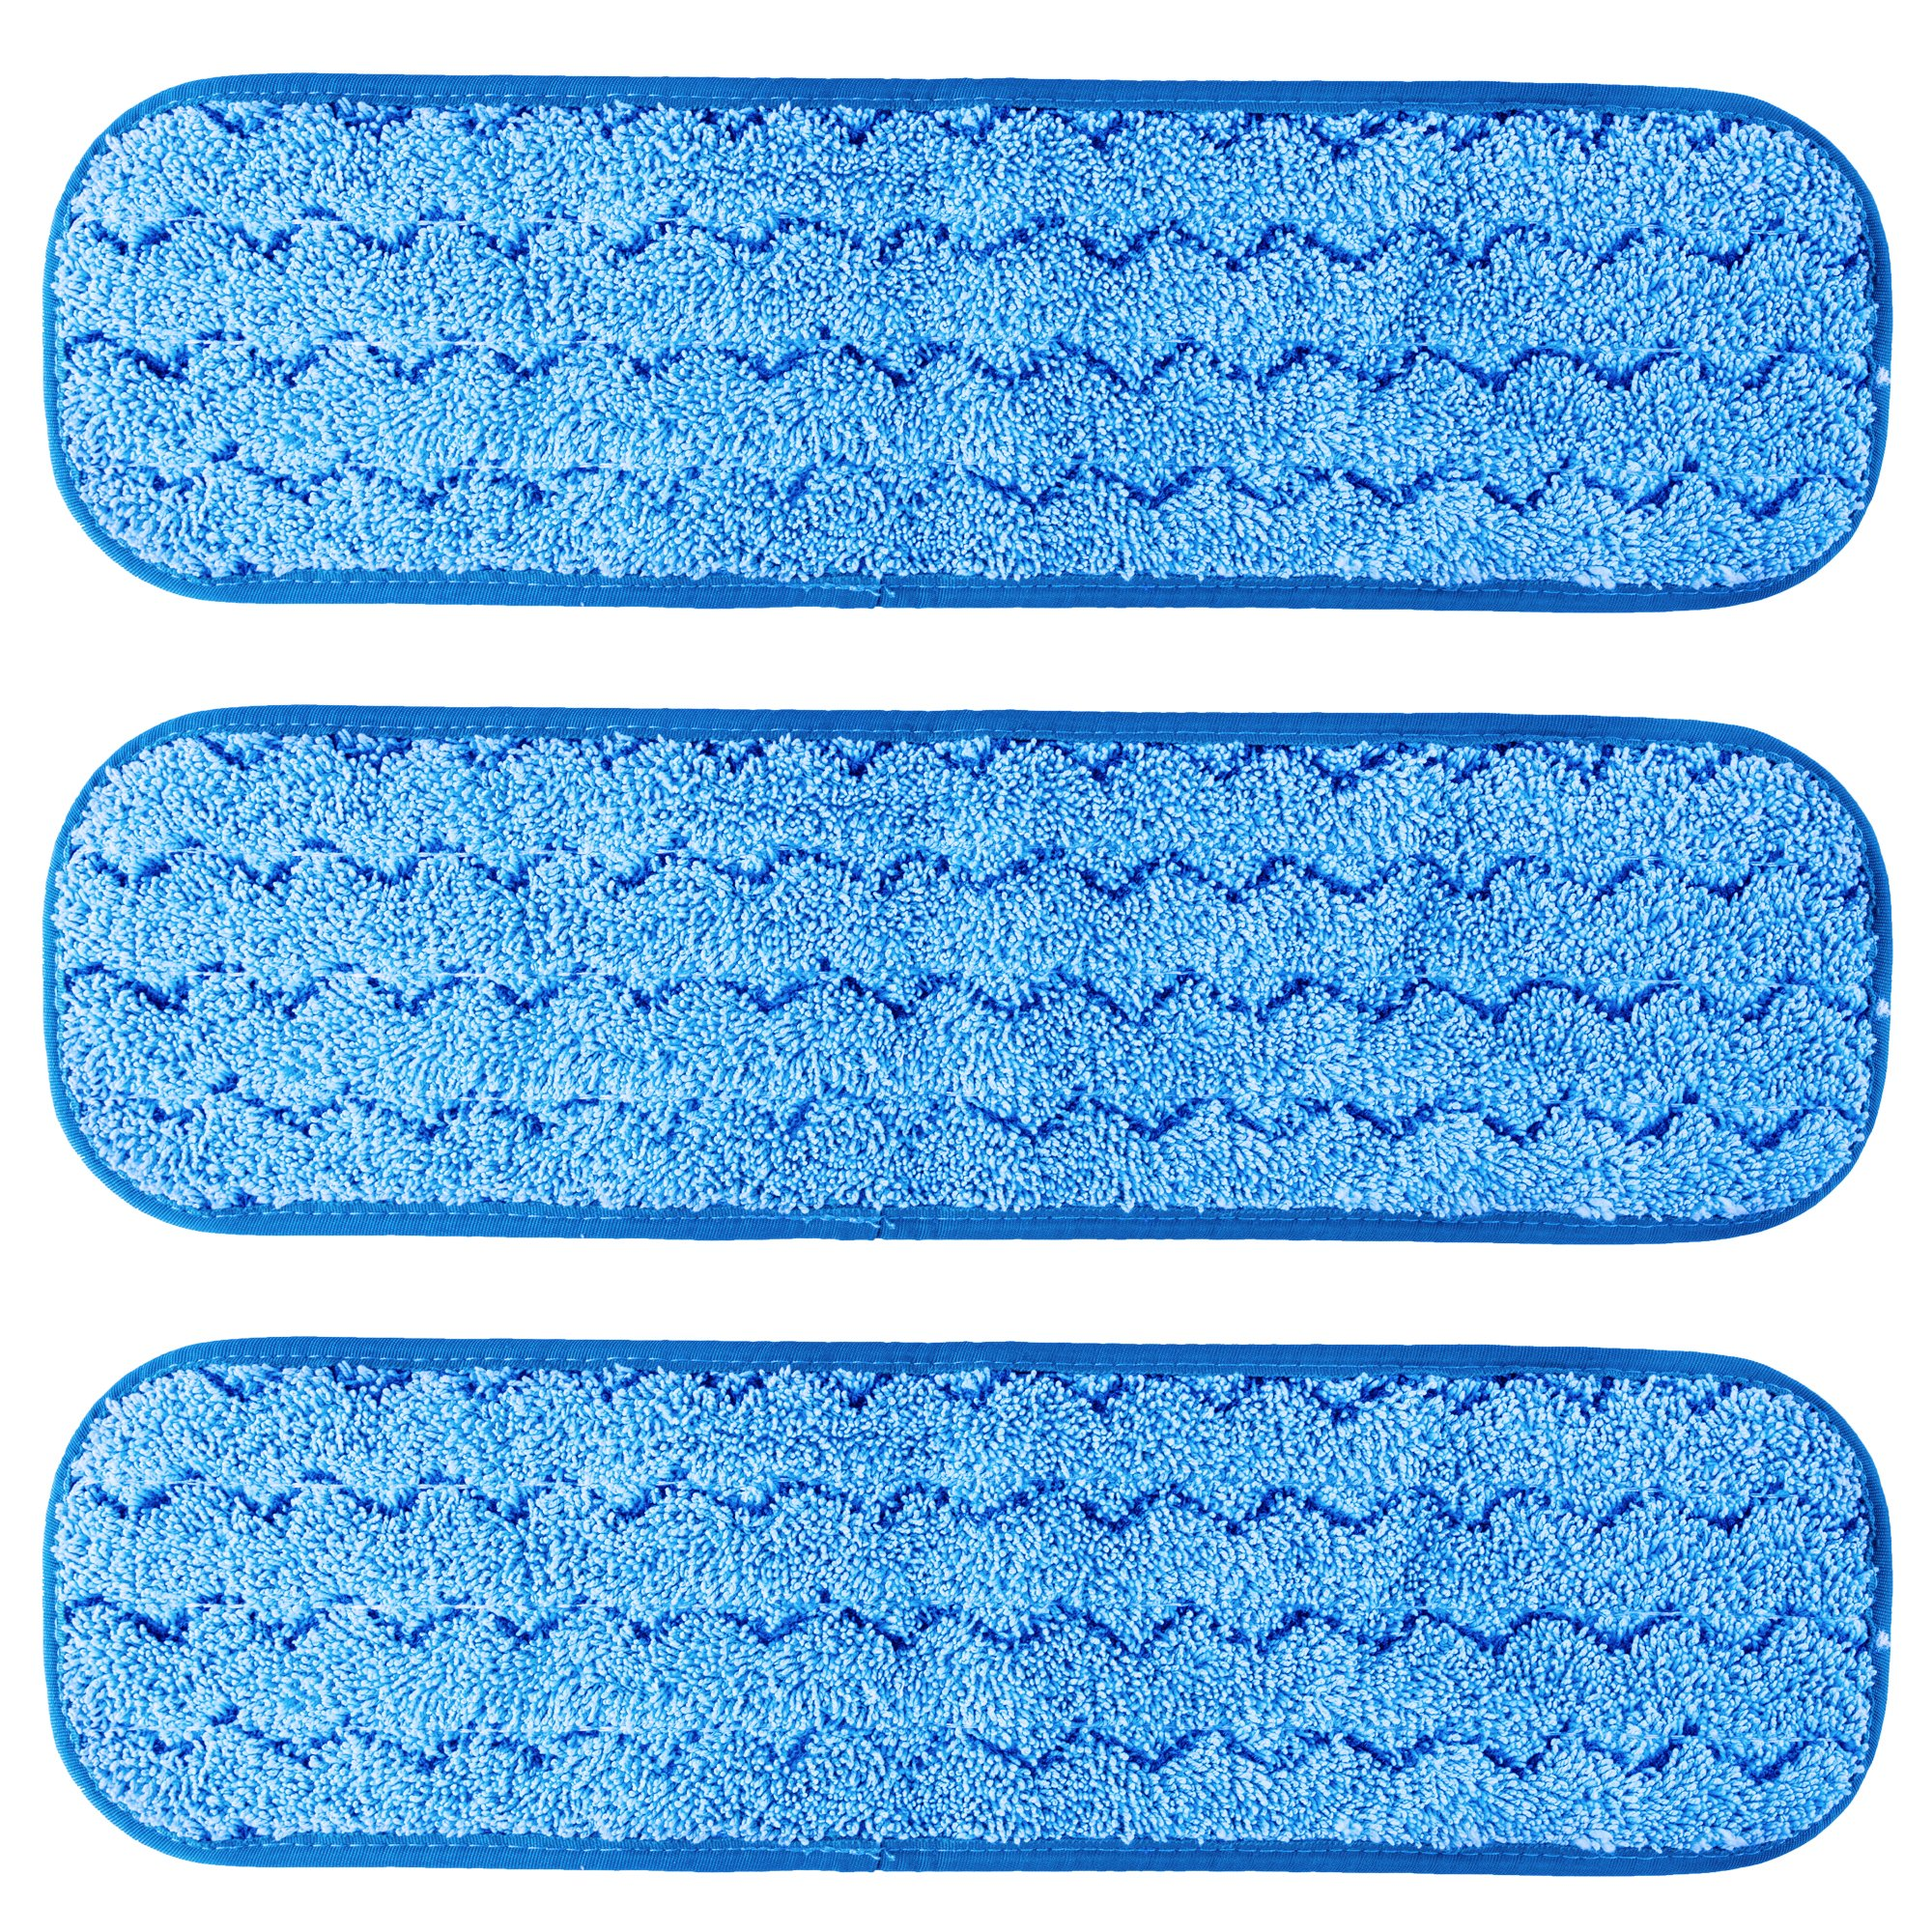 TEBEST 18'' Microfiber Replacement Mop Pads, Standard Looped Flat Wet Mop Home and Commercial Cleaning Refills (Blue2)